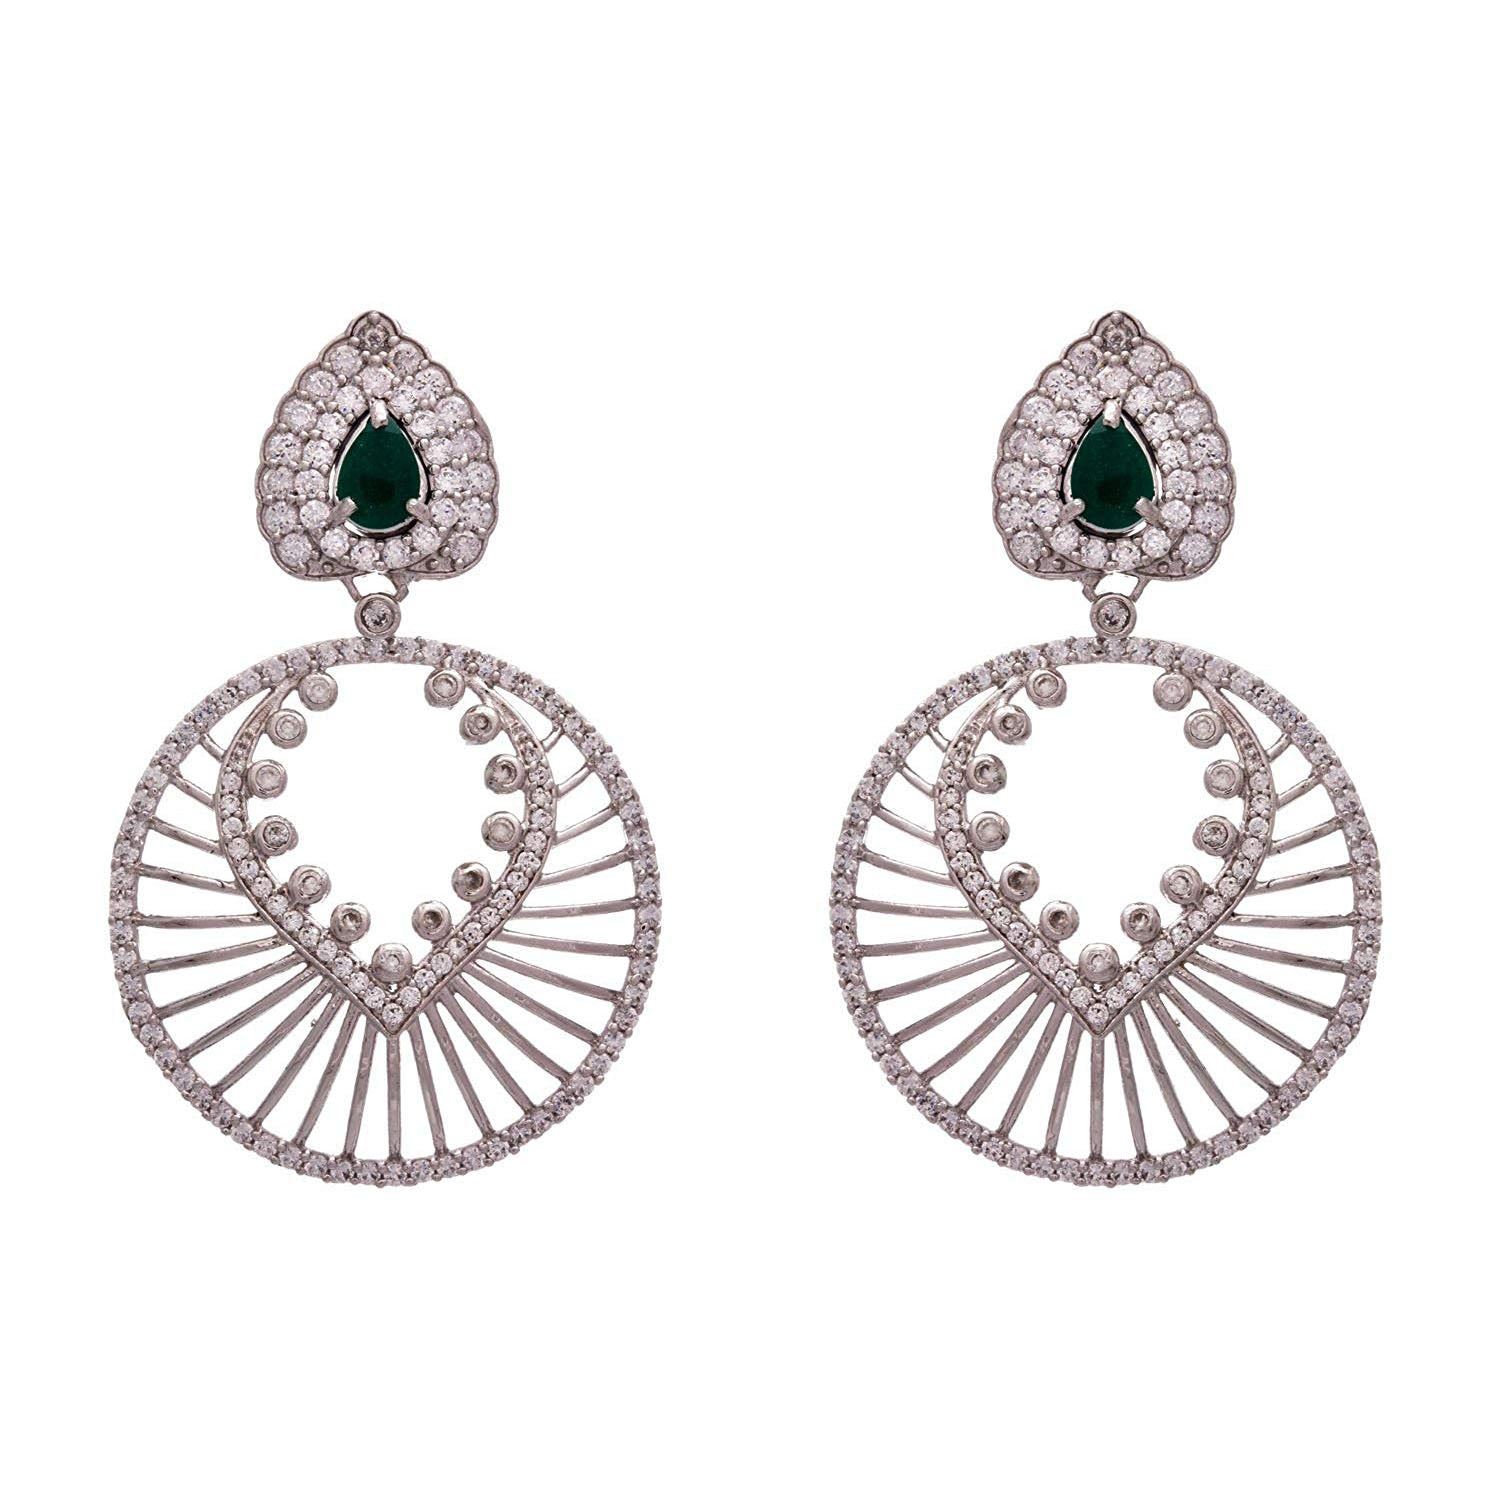 Dazzling Awesome American Diamond Designer Earring.